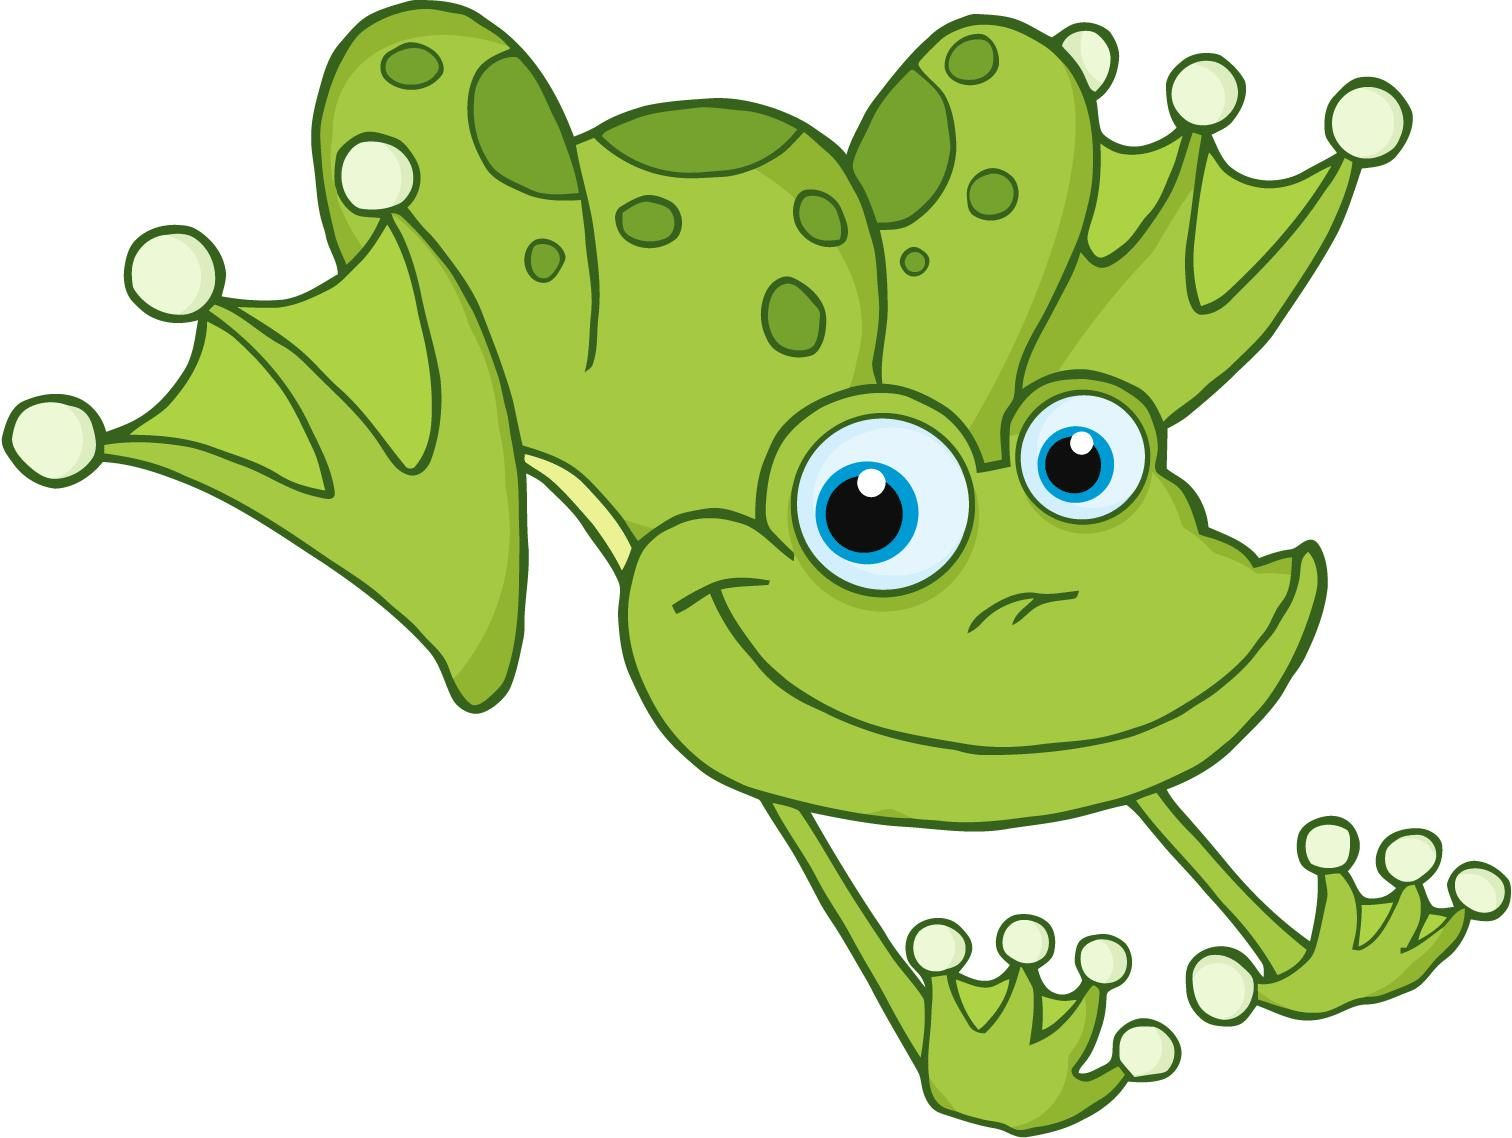 hight resolution of frogs cartoon images this activity as well as all experiments and activities on this blog